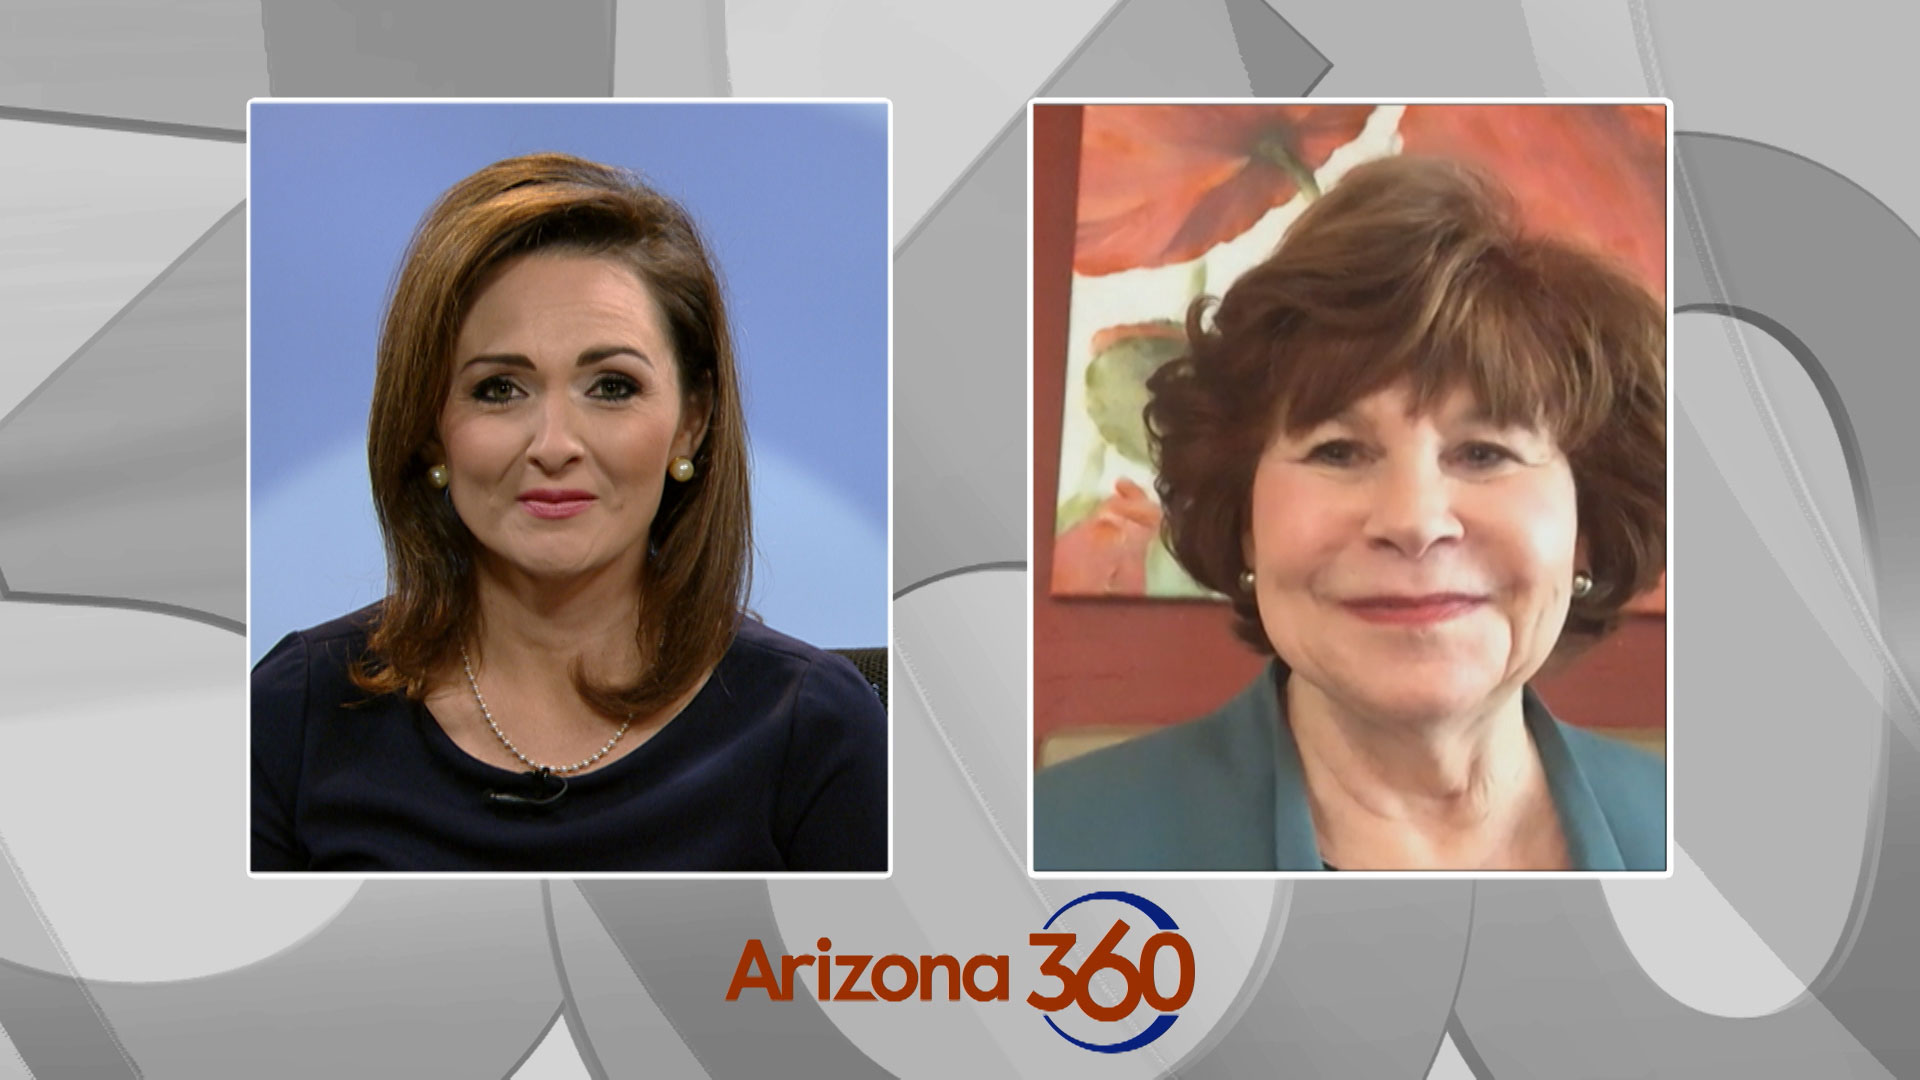 Pima County Attorney Barbara LaWall during an interview with Arizona 360 host Lorraine Rivera on August 12, 2020.